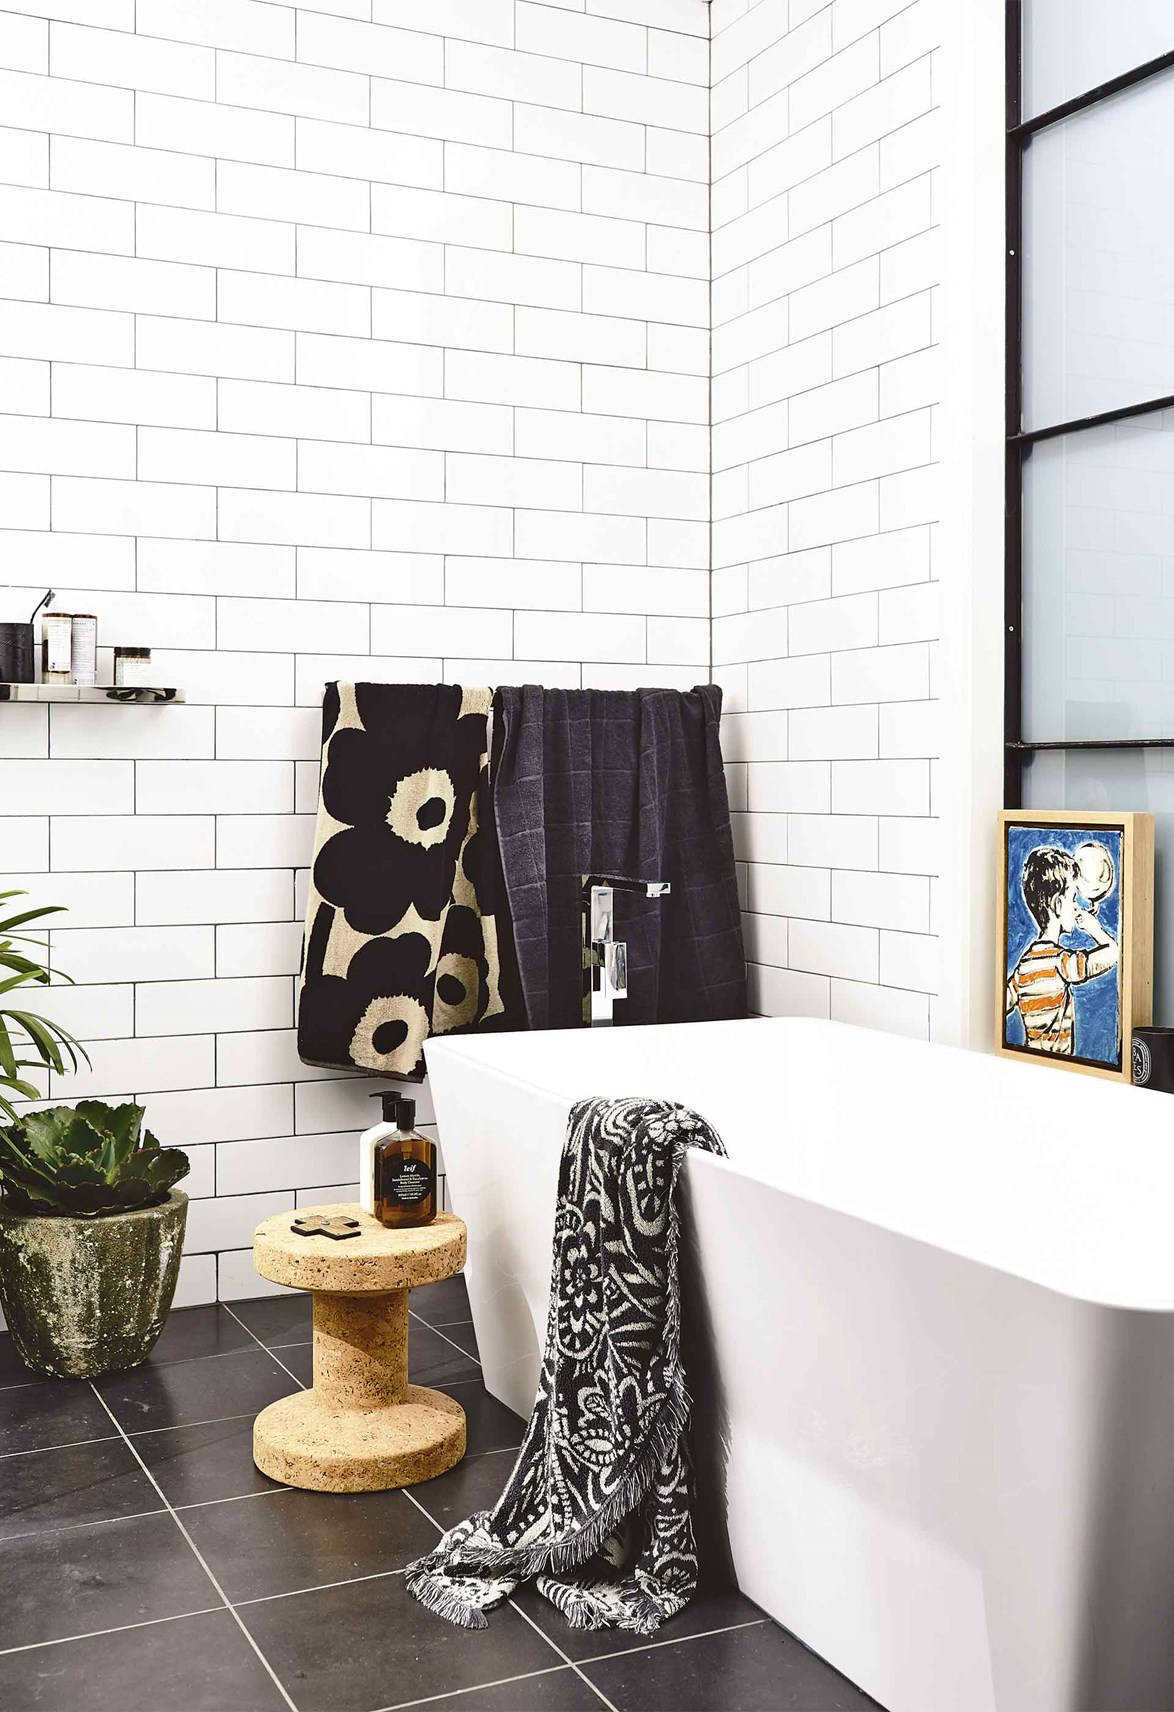 Decorative touches like, indoor plants, good-quality towels and artwork, will help to make a bathroom feel warm and inviting.